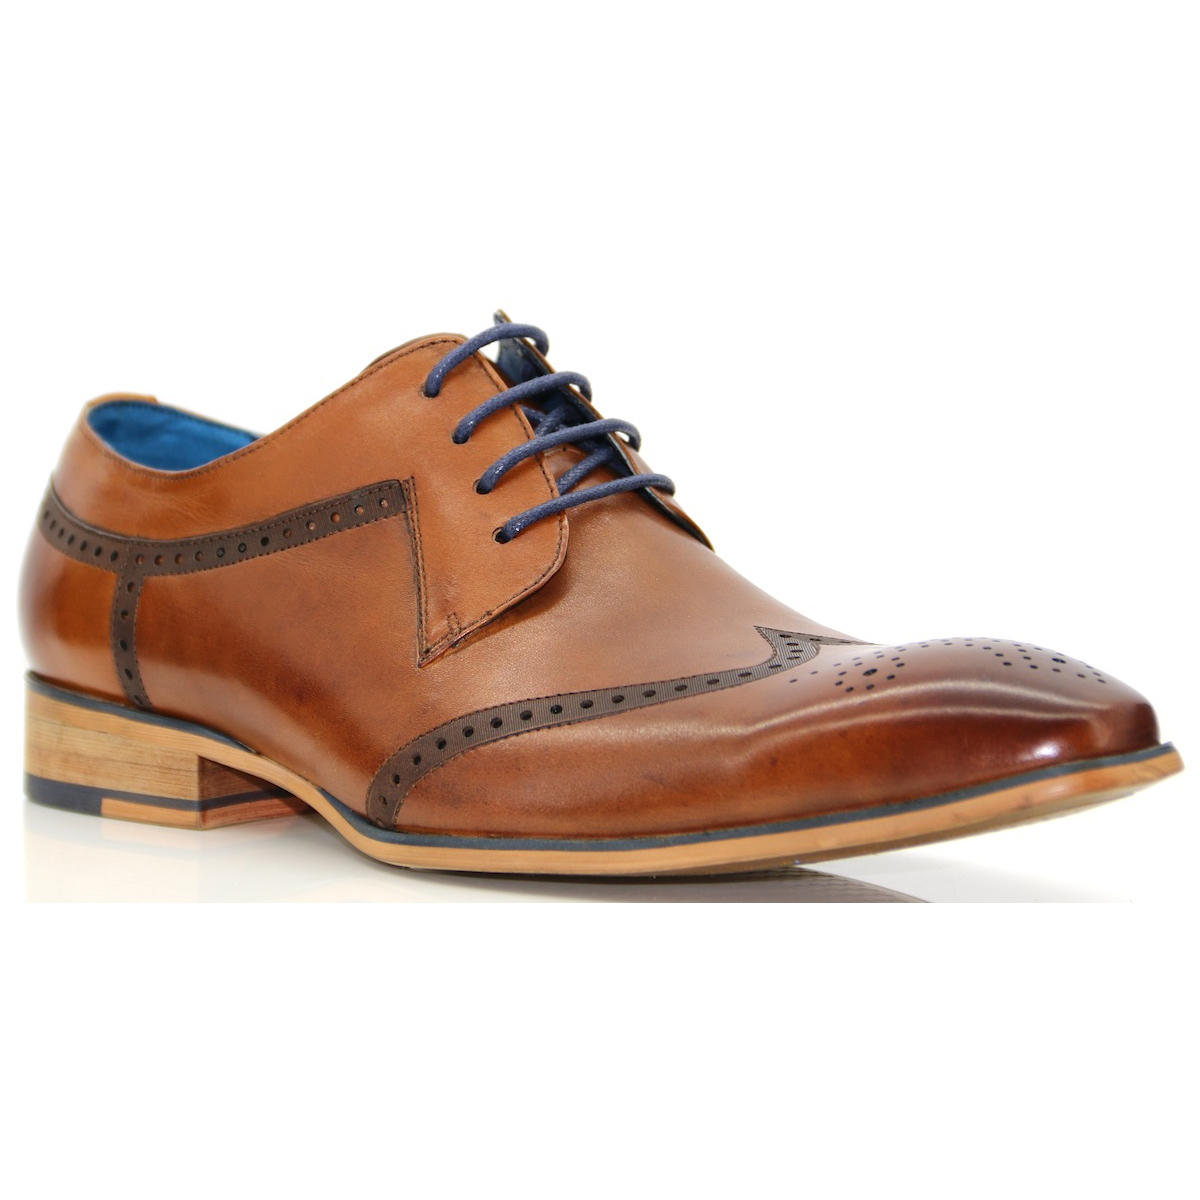 panache shoes 28 images nyland paolo vandini brogue